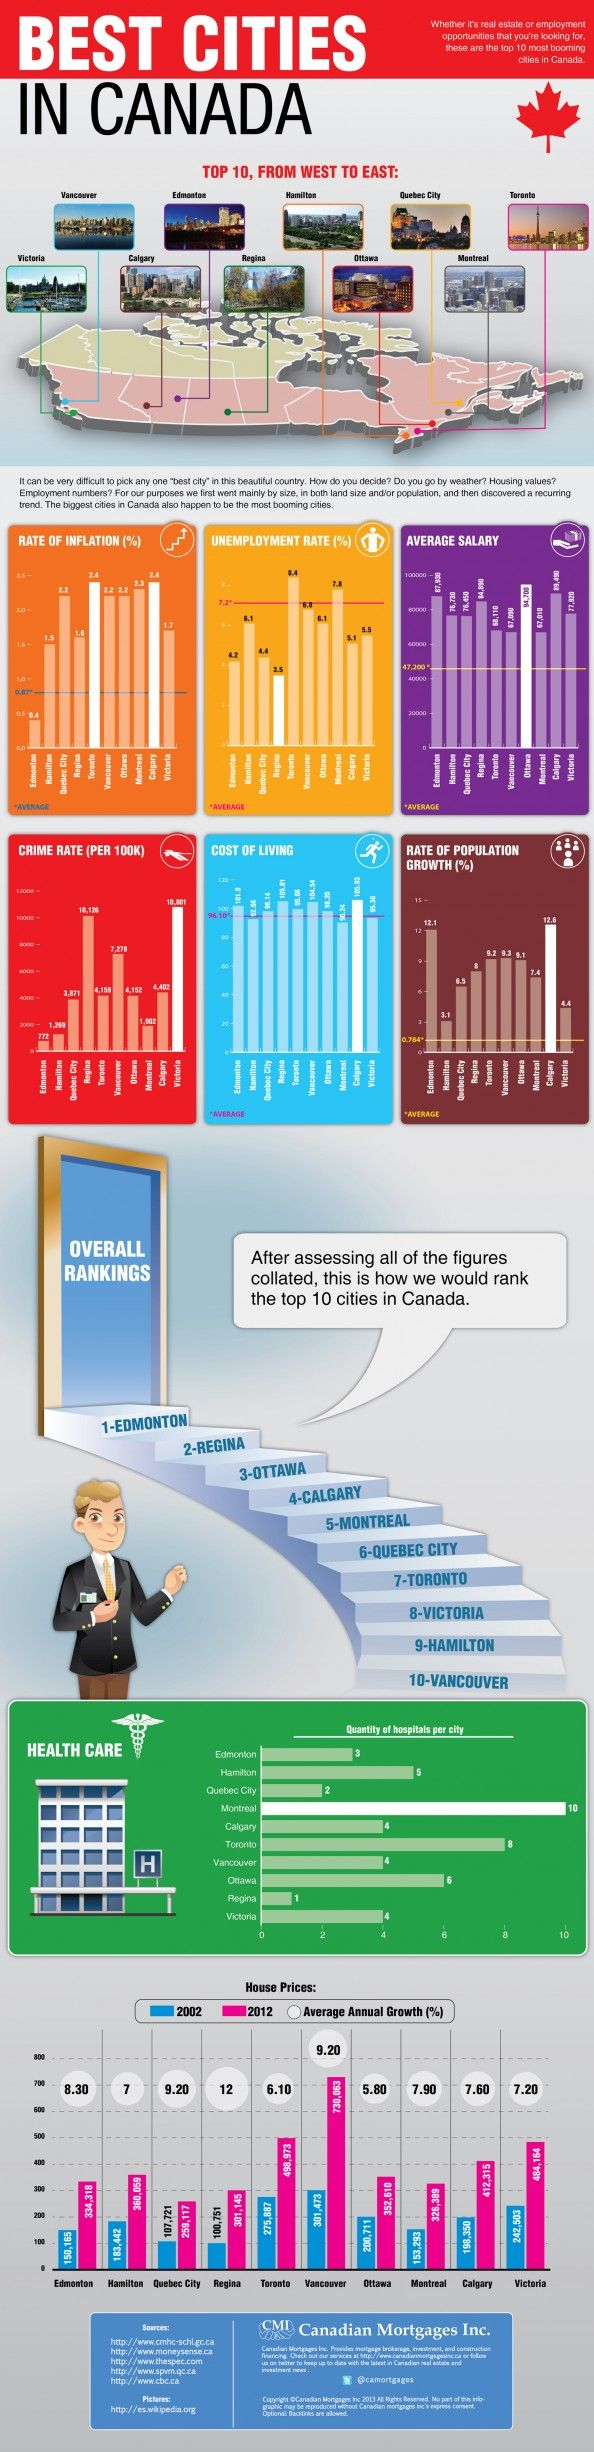 Top 10 Places to Live in #Canada Infographic #yeg looks very good!